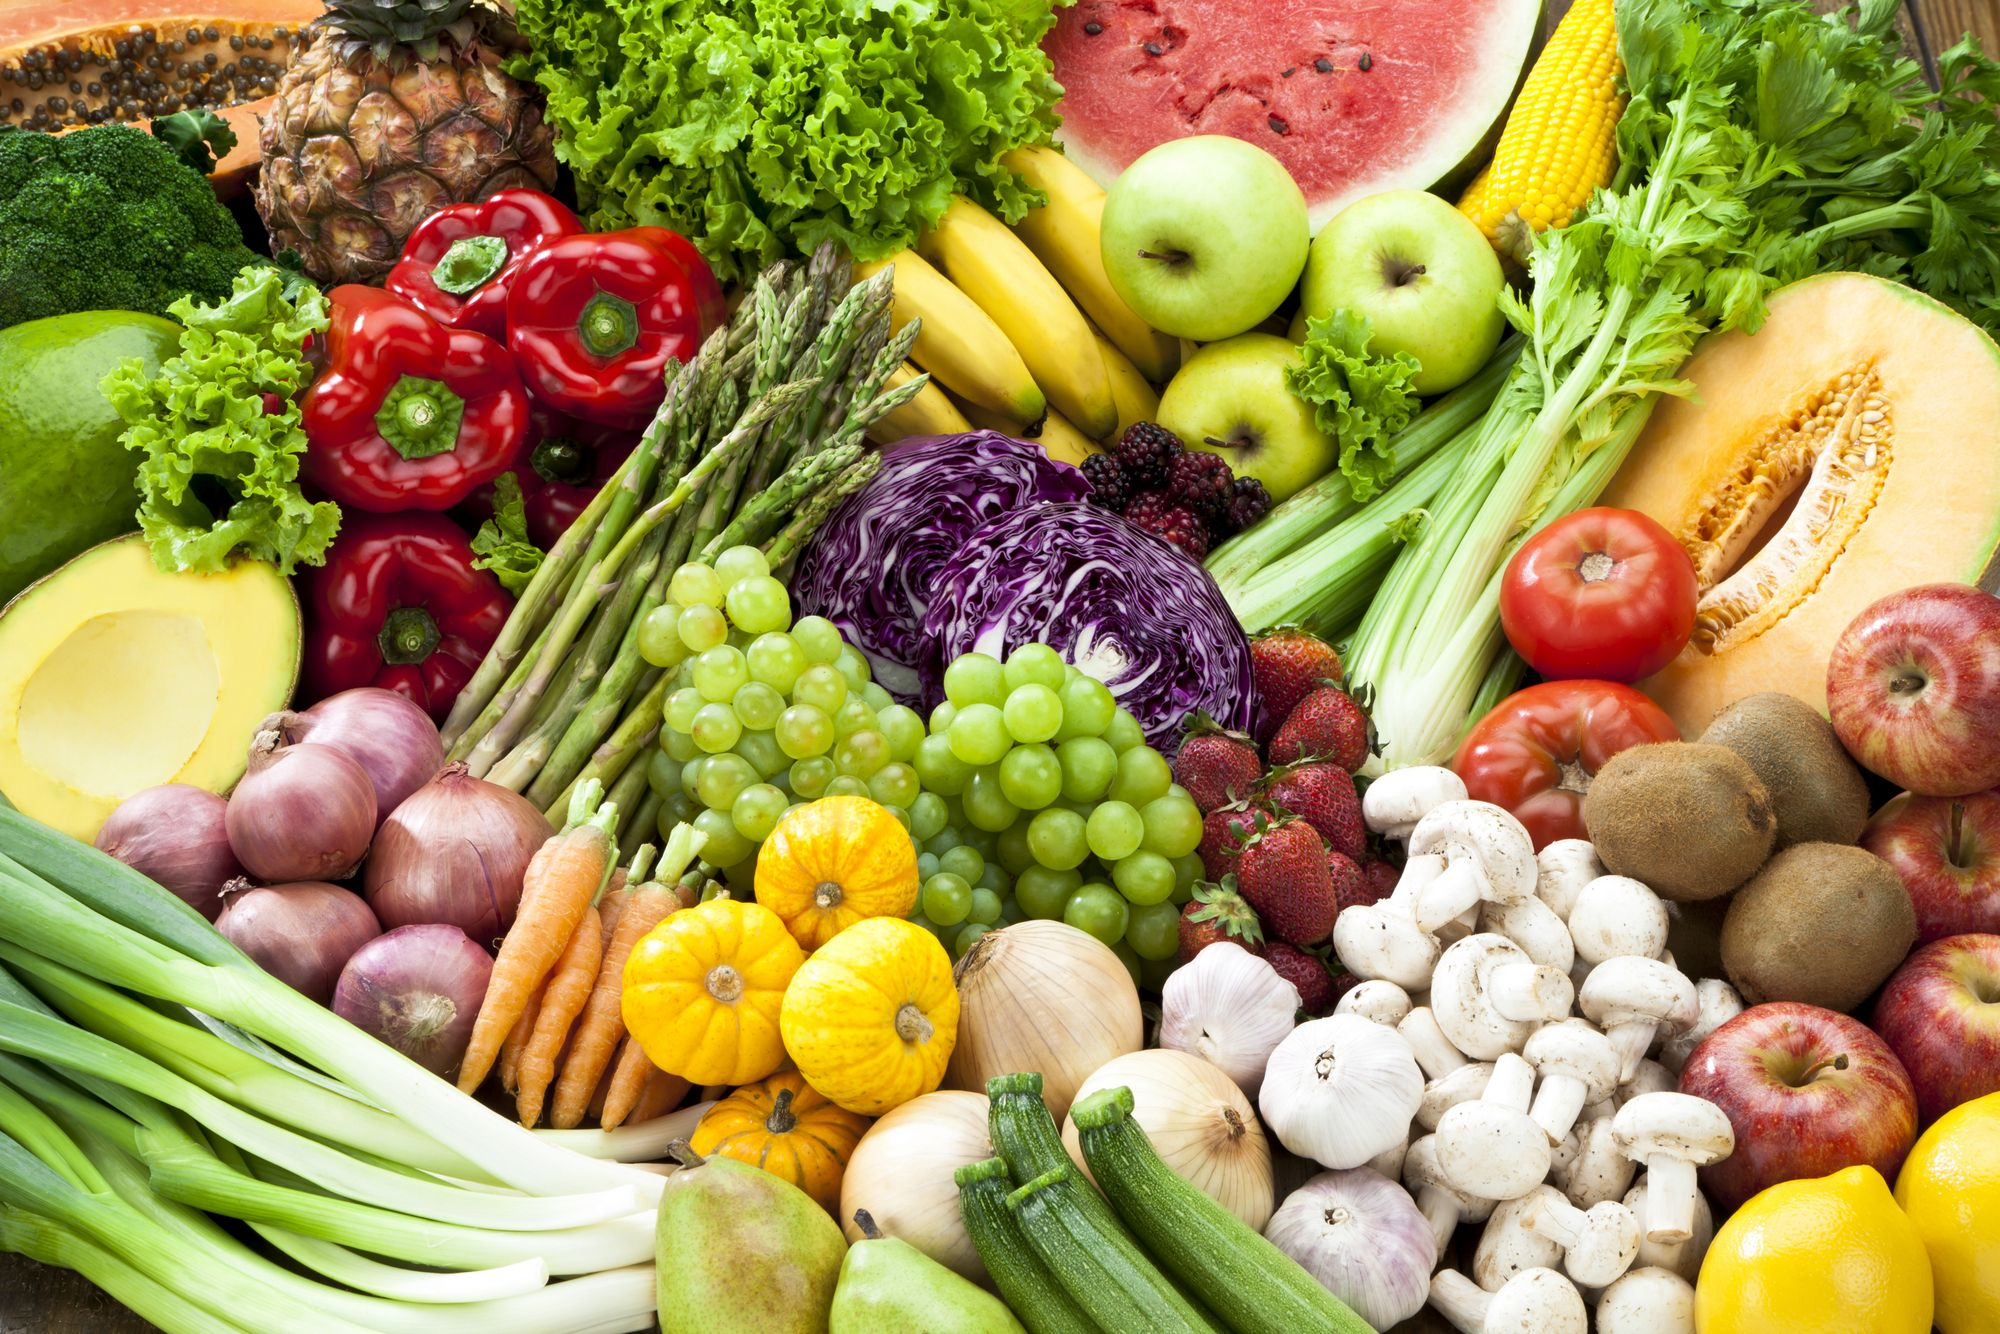 Best foods to eat for good health - Brain Food New Study Shows Healthy Diet Can Protect Against Memory Loss